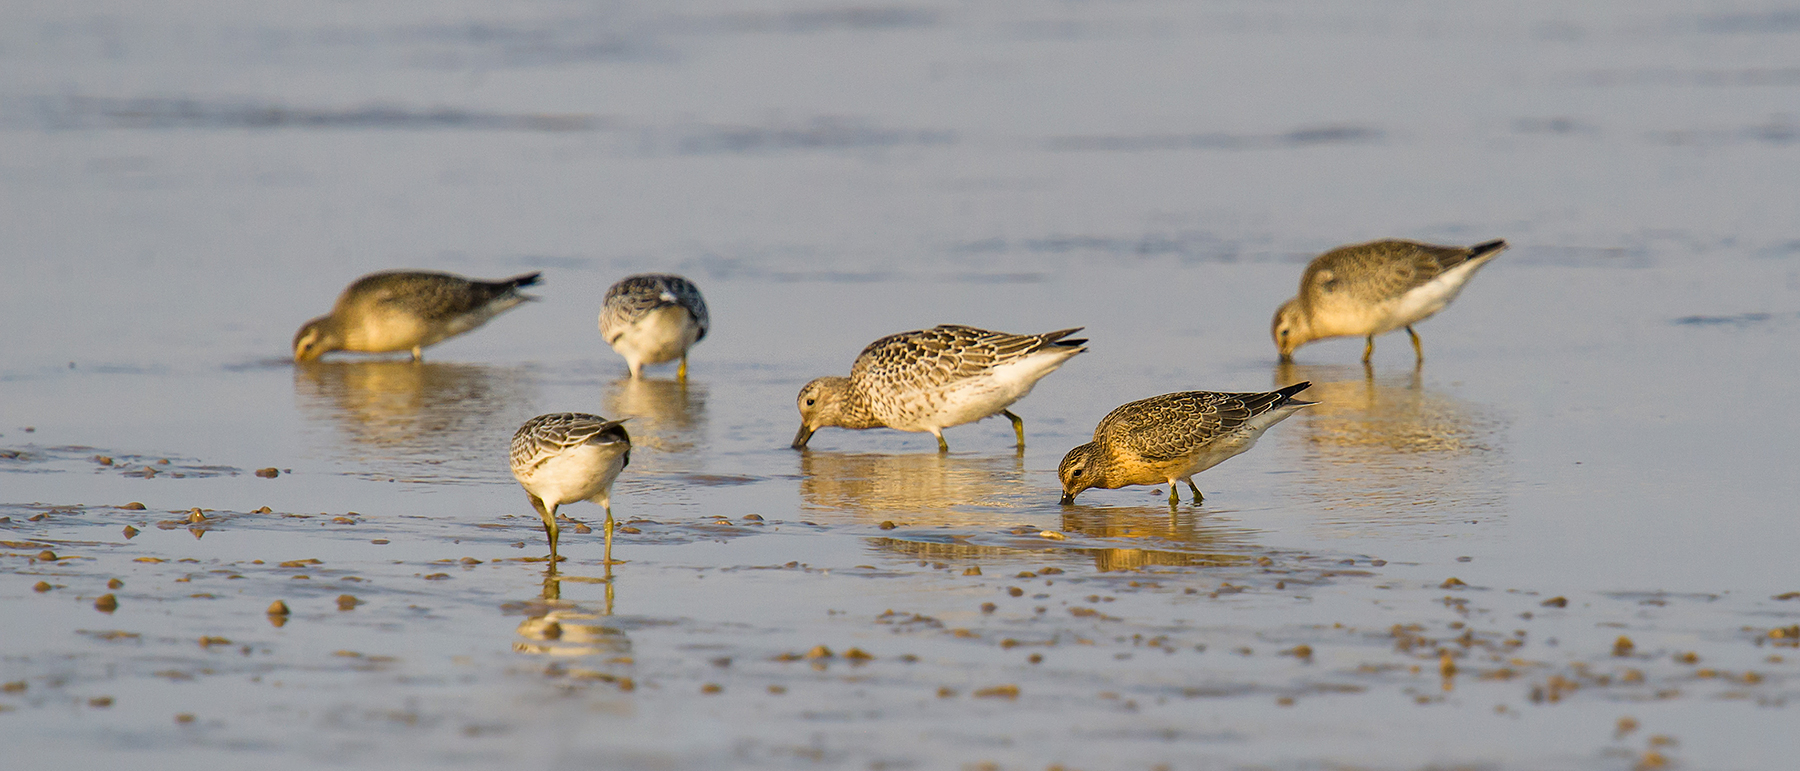 Red Knot with Great Knot